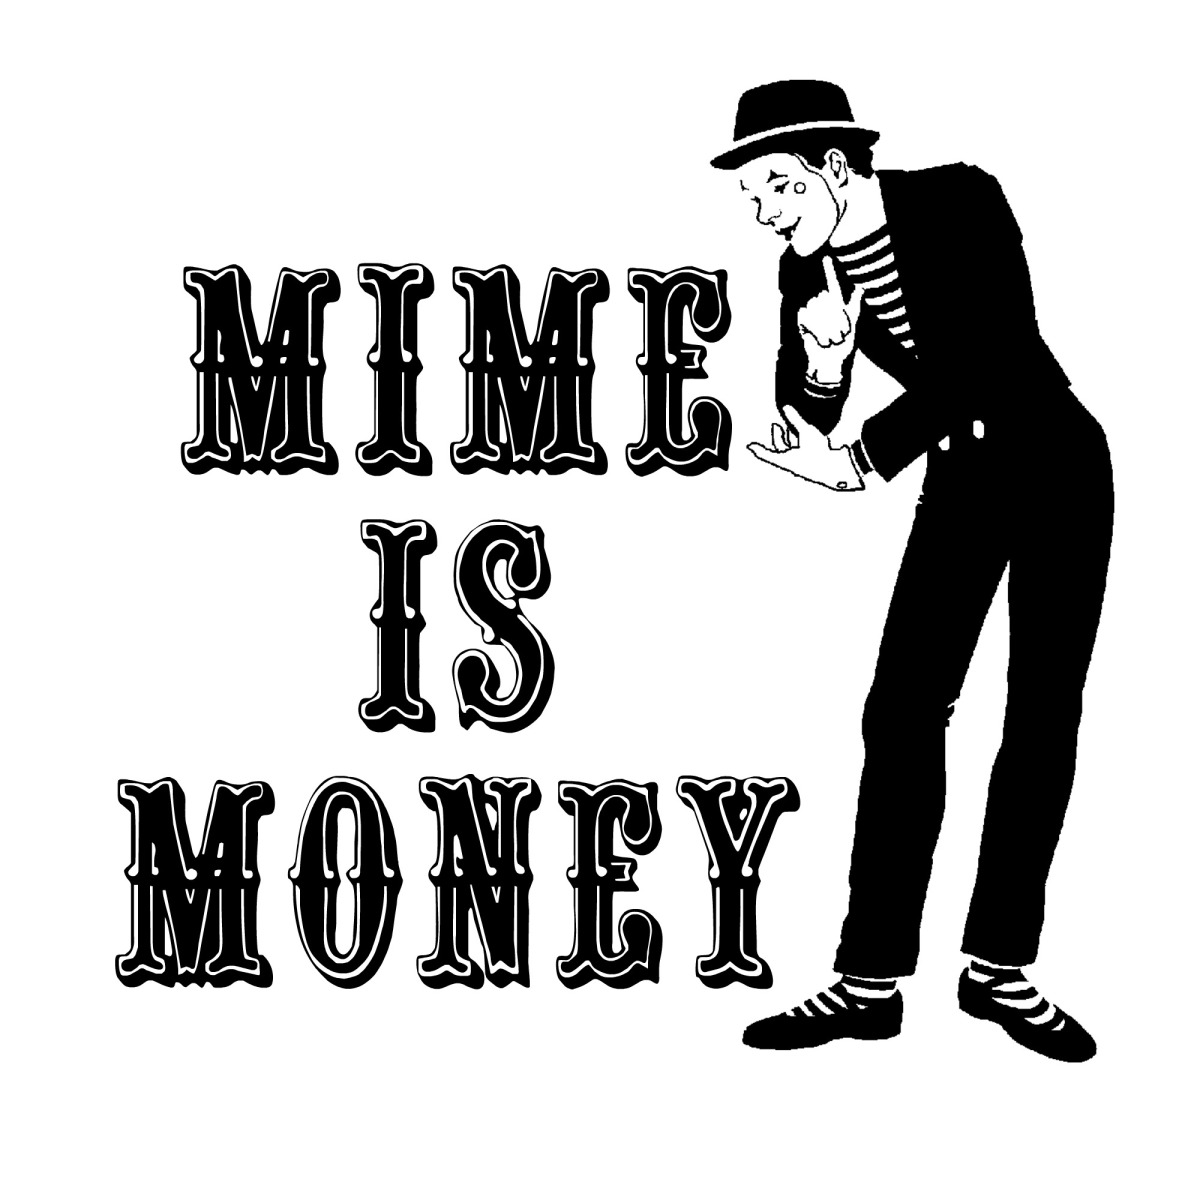 Mime is Money